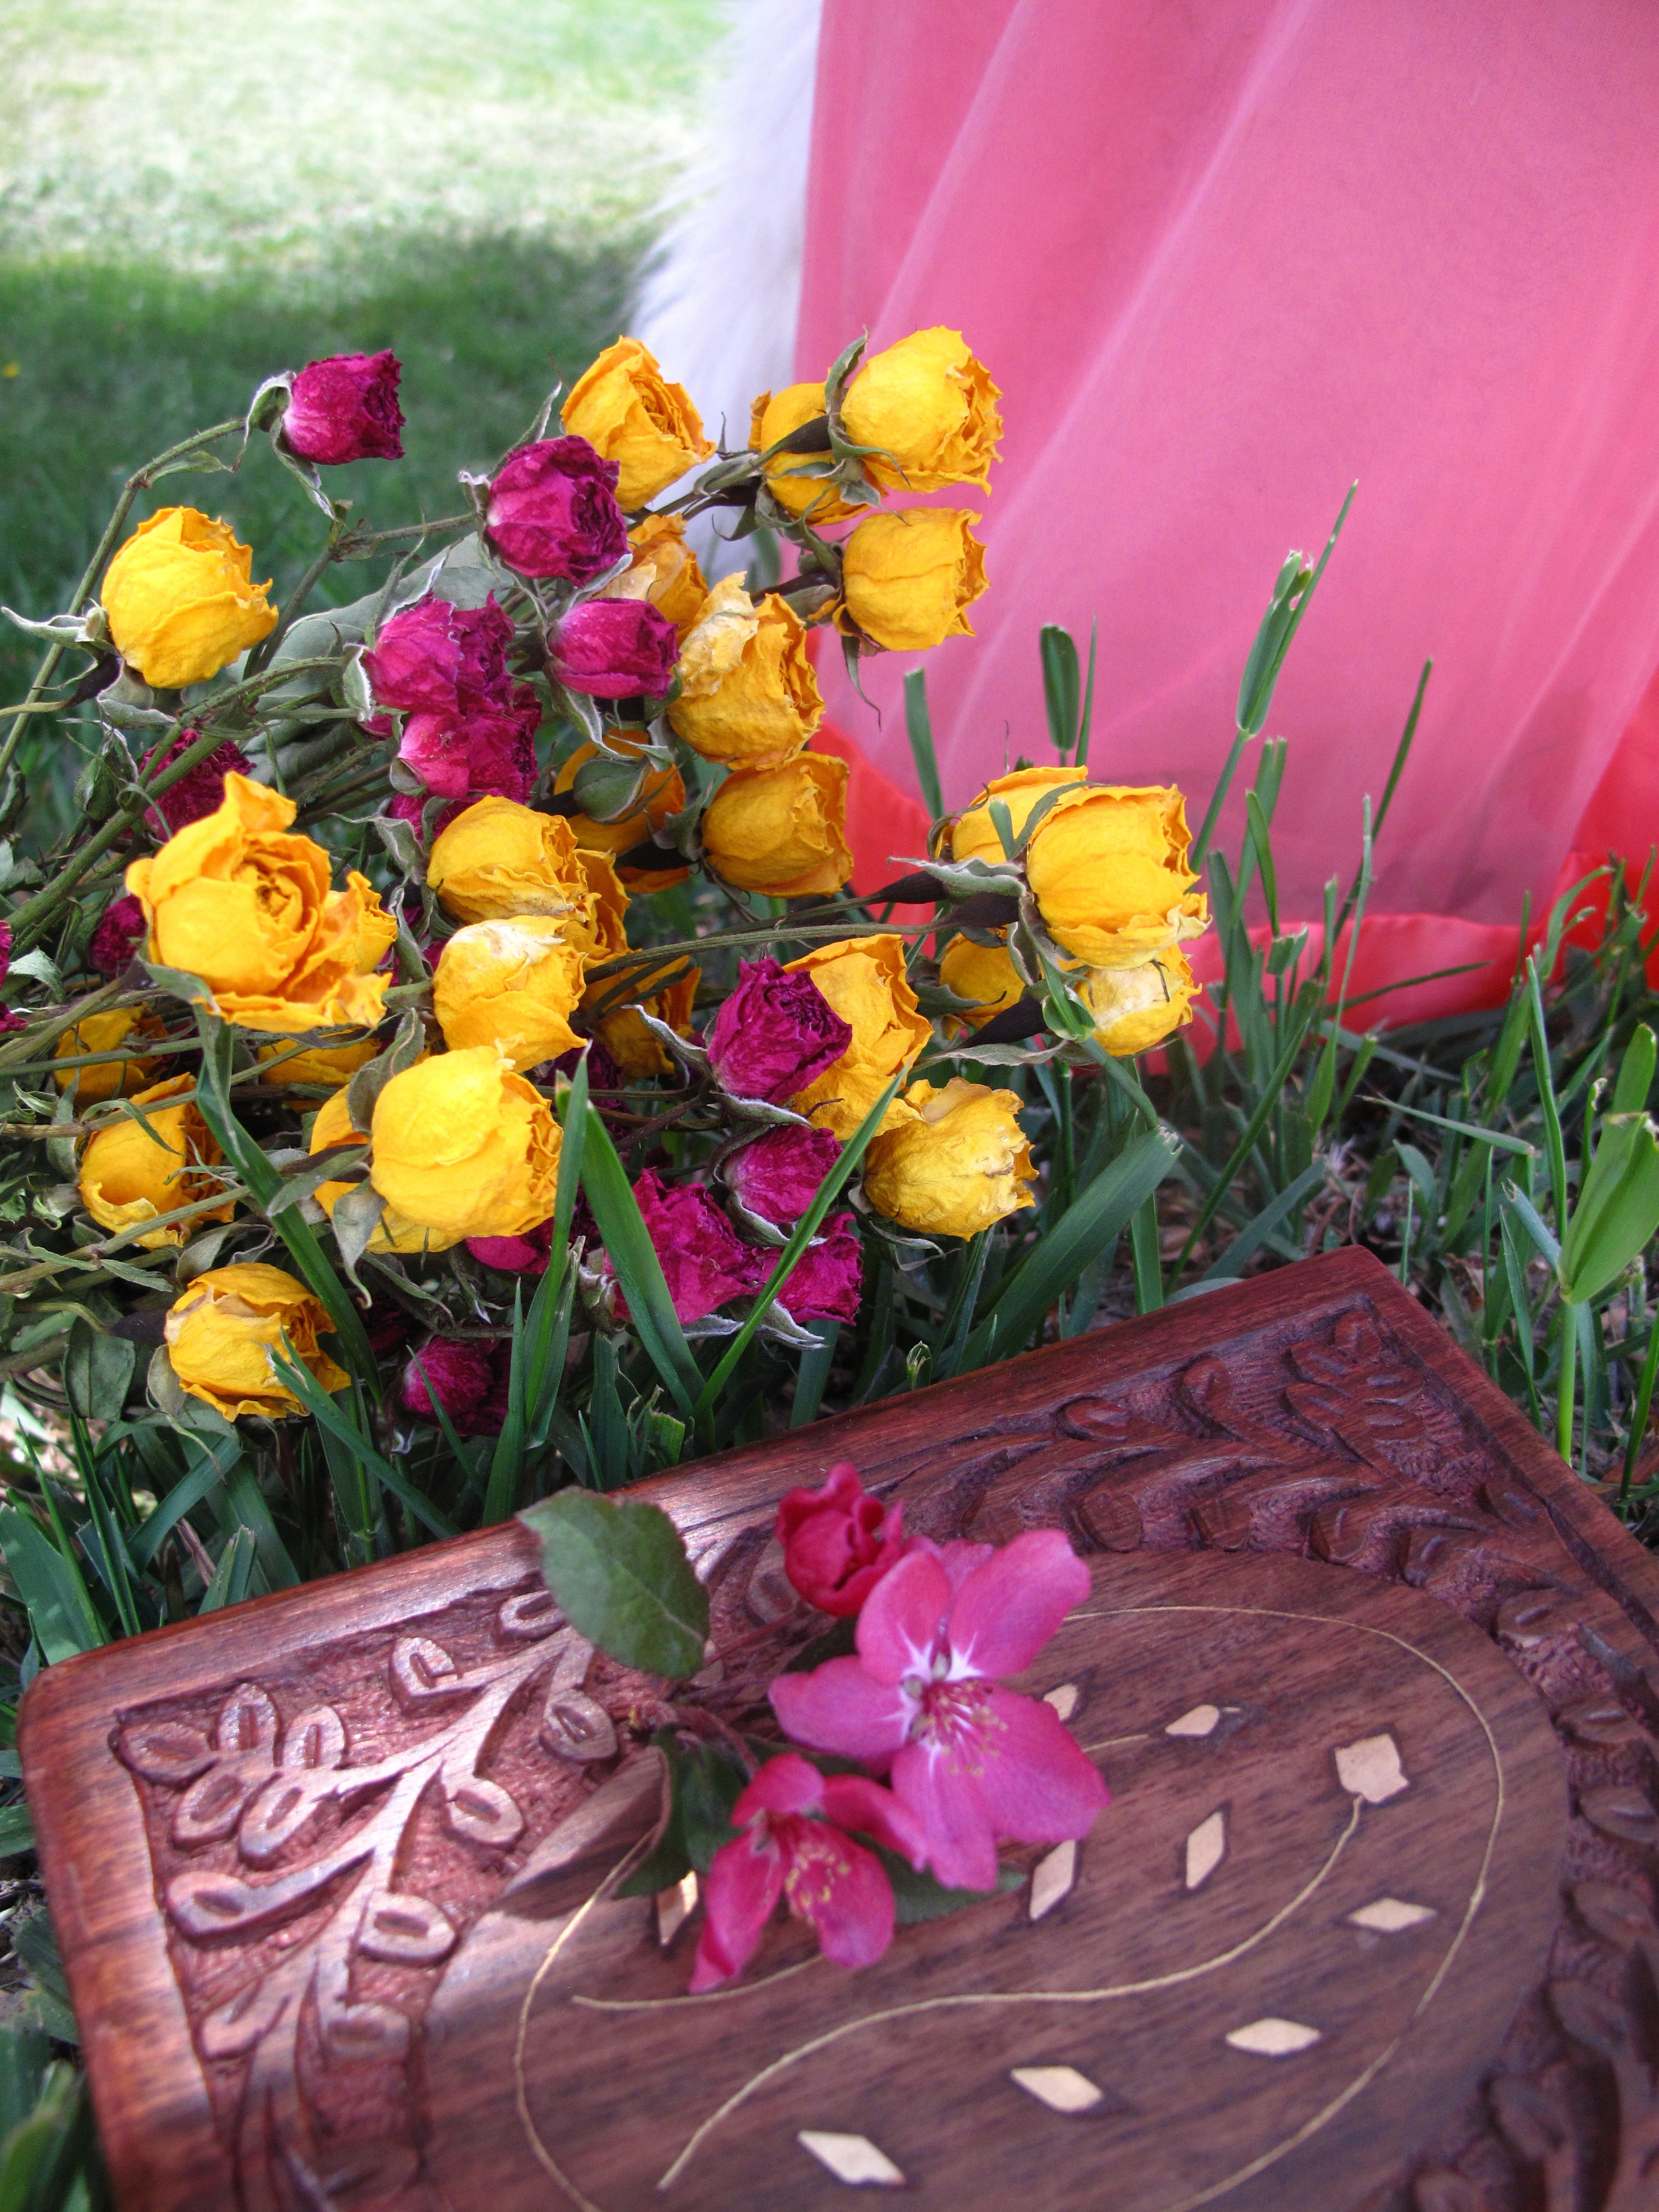 Dried roses and a wooden treasure box.